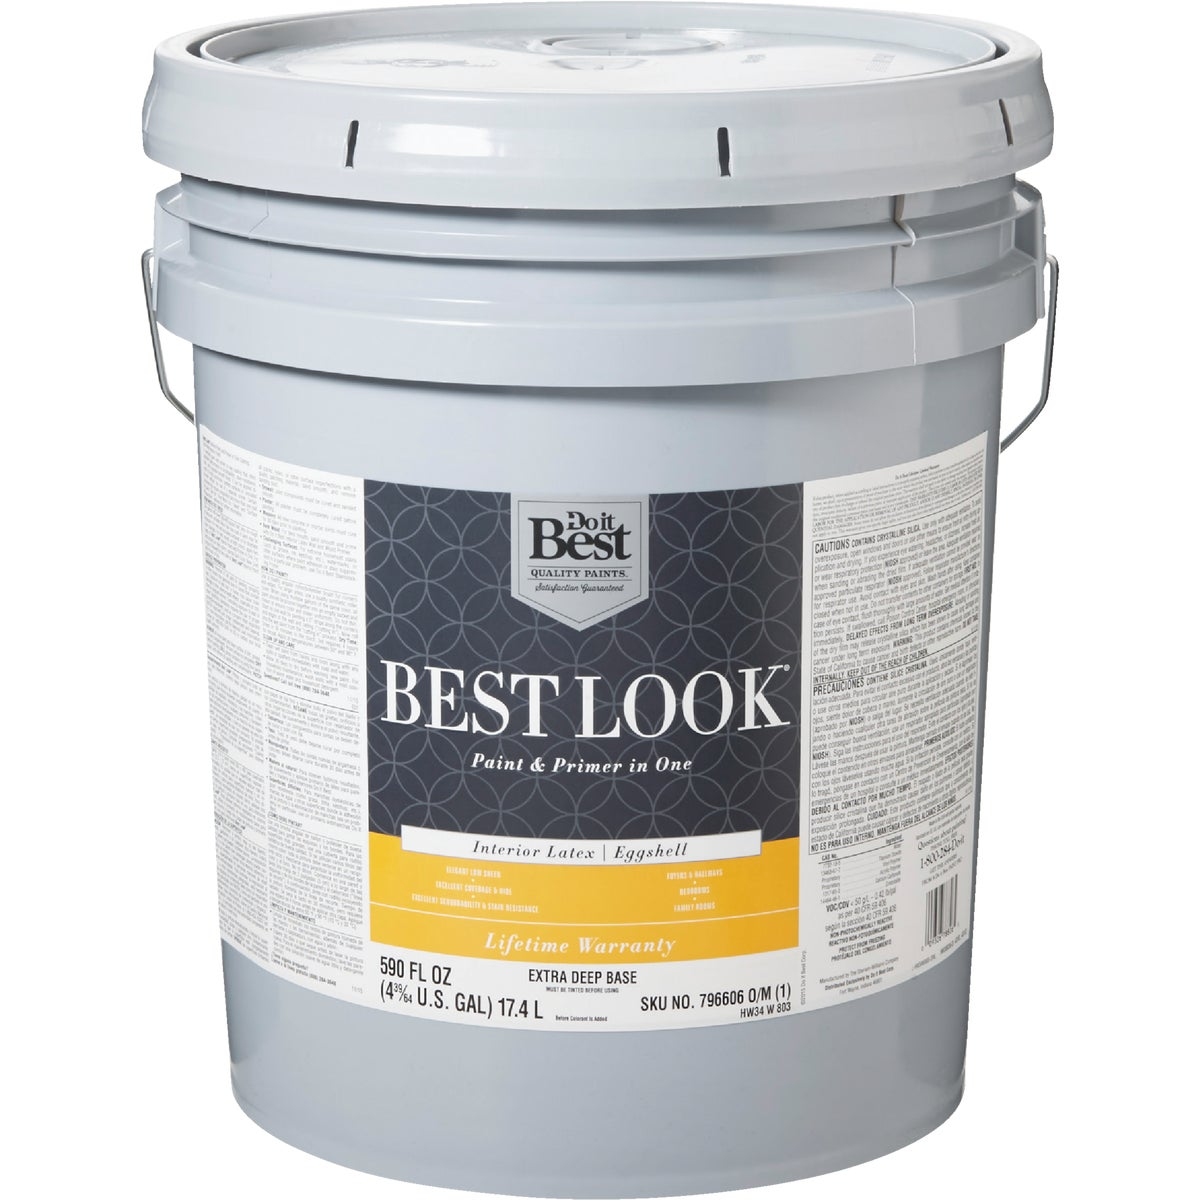 INT EGG EX DEEP BS PAINT - HW34W0803-20 by Do it Best